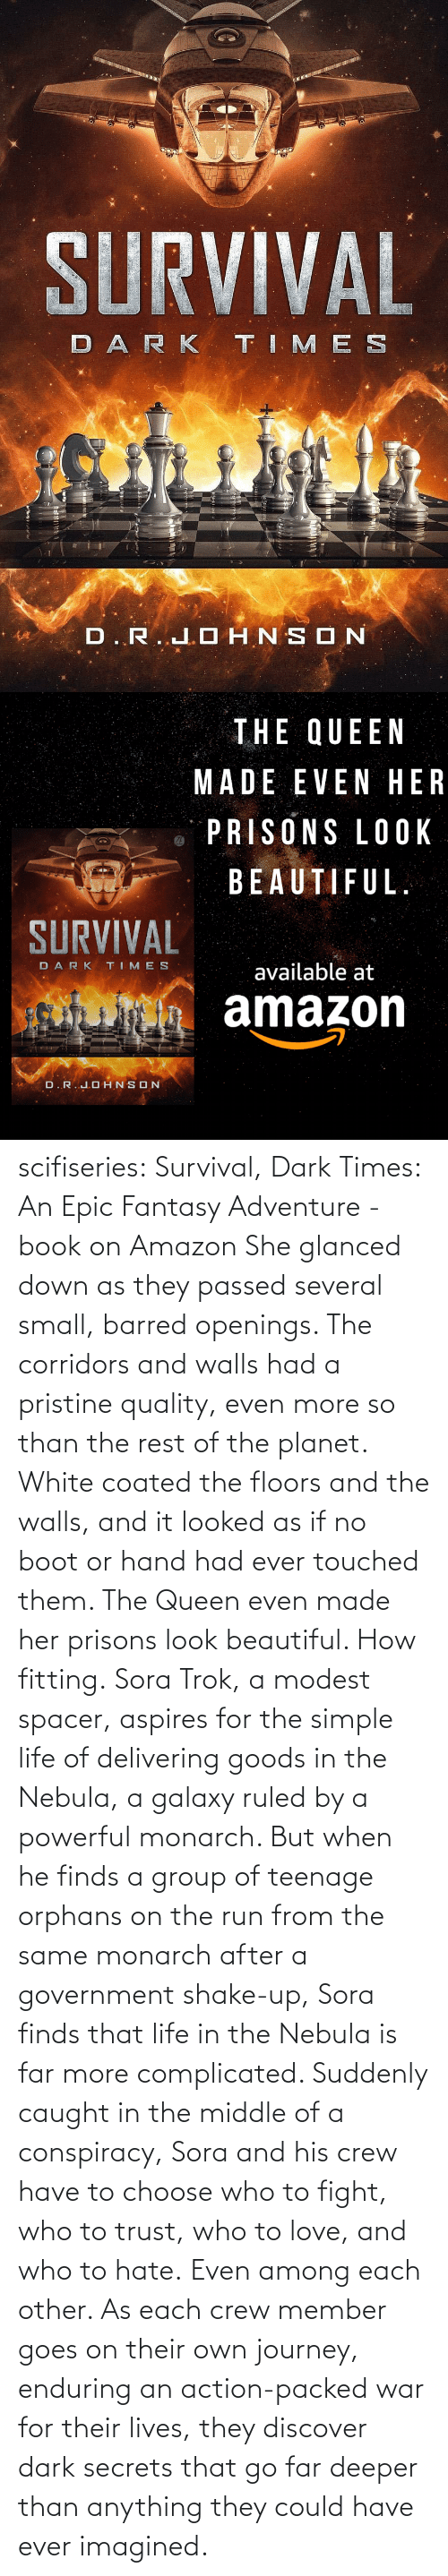 Run: scifiseries: Survival, Dark Times: An Epic Fantasy Adventure - book on Amazon  She glanced down as they  passed several small, barred openings. The corridors and walls had a  pristine quality, even more so than the rest of the planet. White coated  the floors and the walls, and it looked as if no boot or hand had ever  touched them.  The Queen even made her prisons look beautiful.  How fitting. Sora  Trok, a modest spacer, aspires for the simple life of delivering goods  in the Nebula, a galaxy ruled by a powerful monarch. But when he finds a  group of teenage orphans on the run from the same monarch after a  government shake-up, Sora finds that life in the Nebula is far more complicated.  Suddenly  caught in the middle of a conspiracy, Sora and his crew have to choose  who to fight, who to trust, who to love, and who to hate. Even among each other.  As  each crew member goes on their own journey, enduring an action-packed  war for their lives, they discover dark secrets that go far deeper than  anything they could have ever imagined.